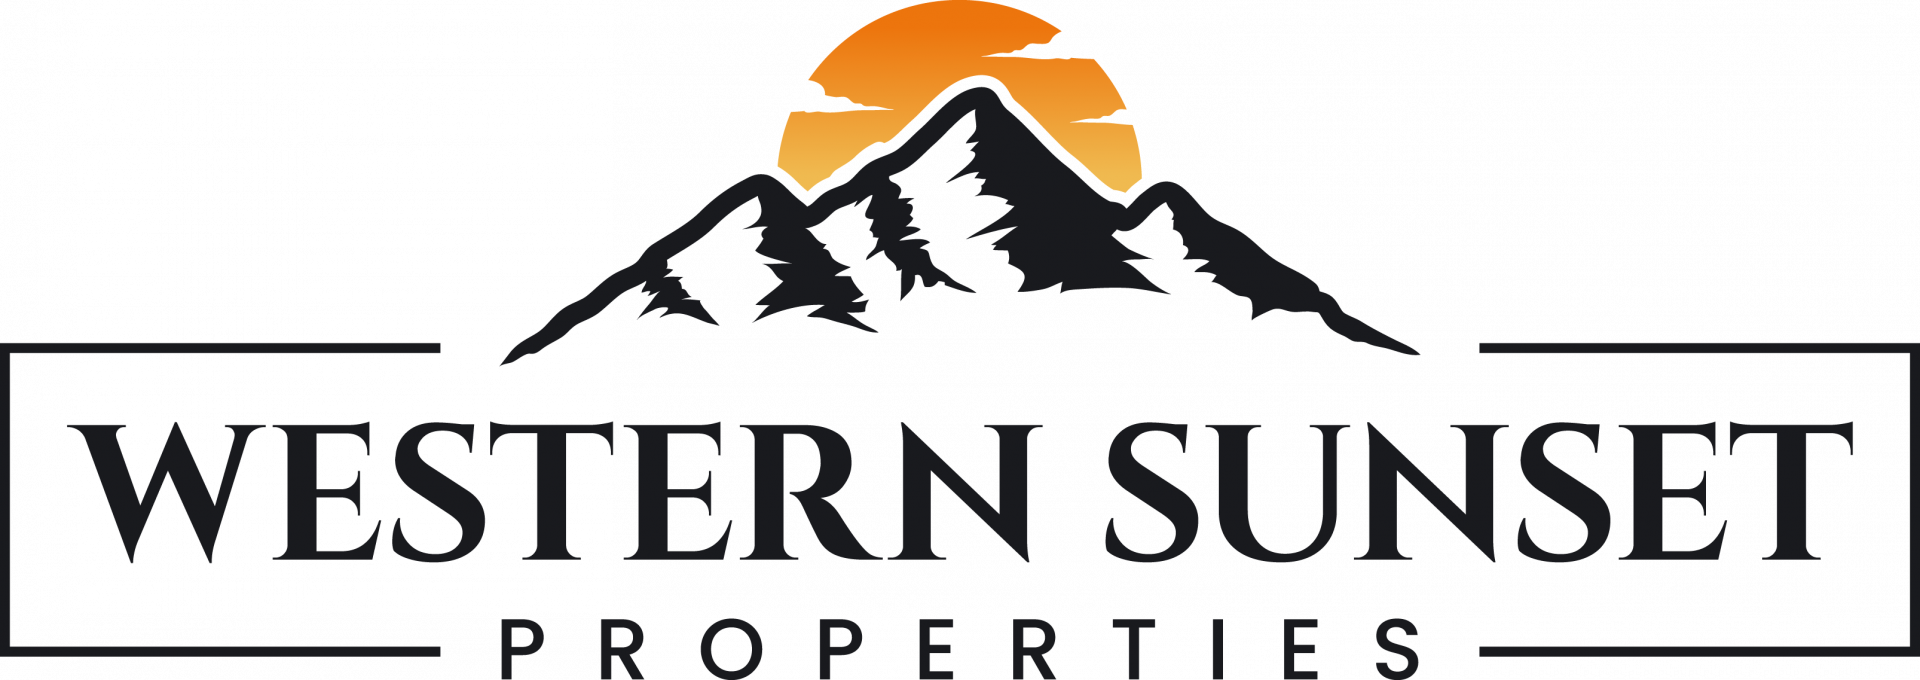 Western Sunset Properties logo